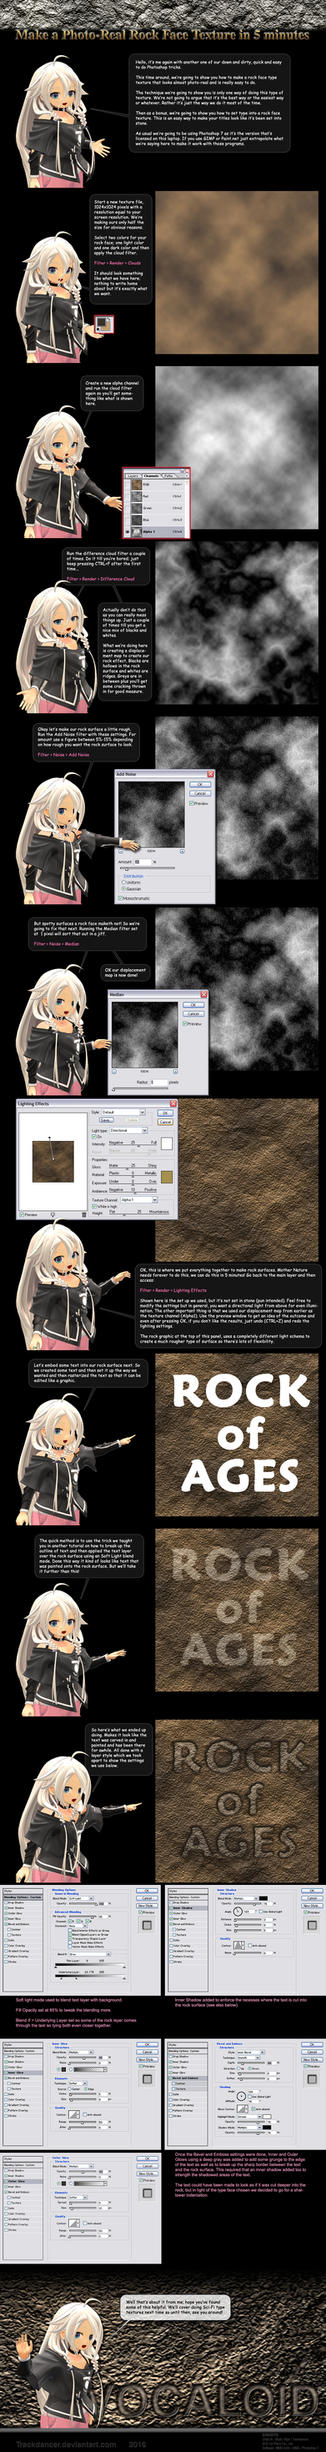 Mmd photoshop tutorial quick rock textures by trackdancer on deviantart mmd photoshop tutorial quick rock textures by trackdancer baditri Images